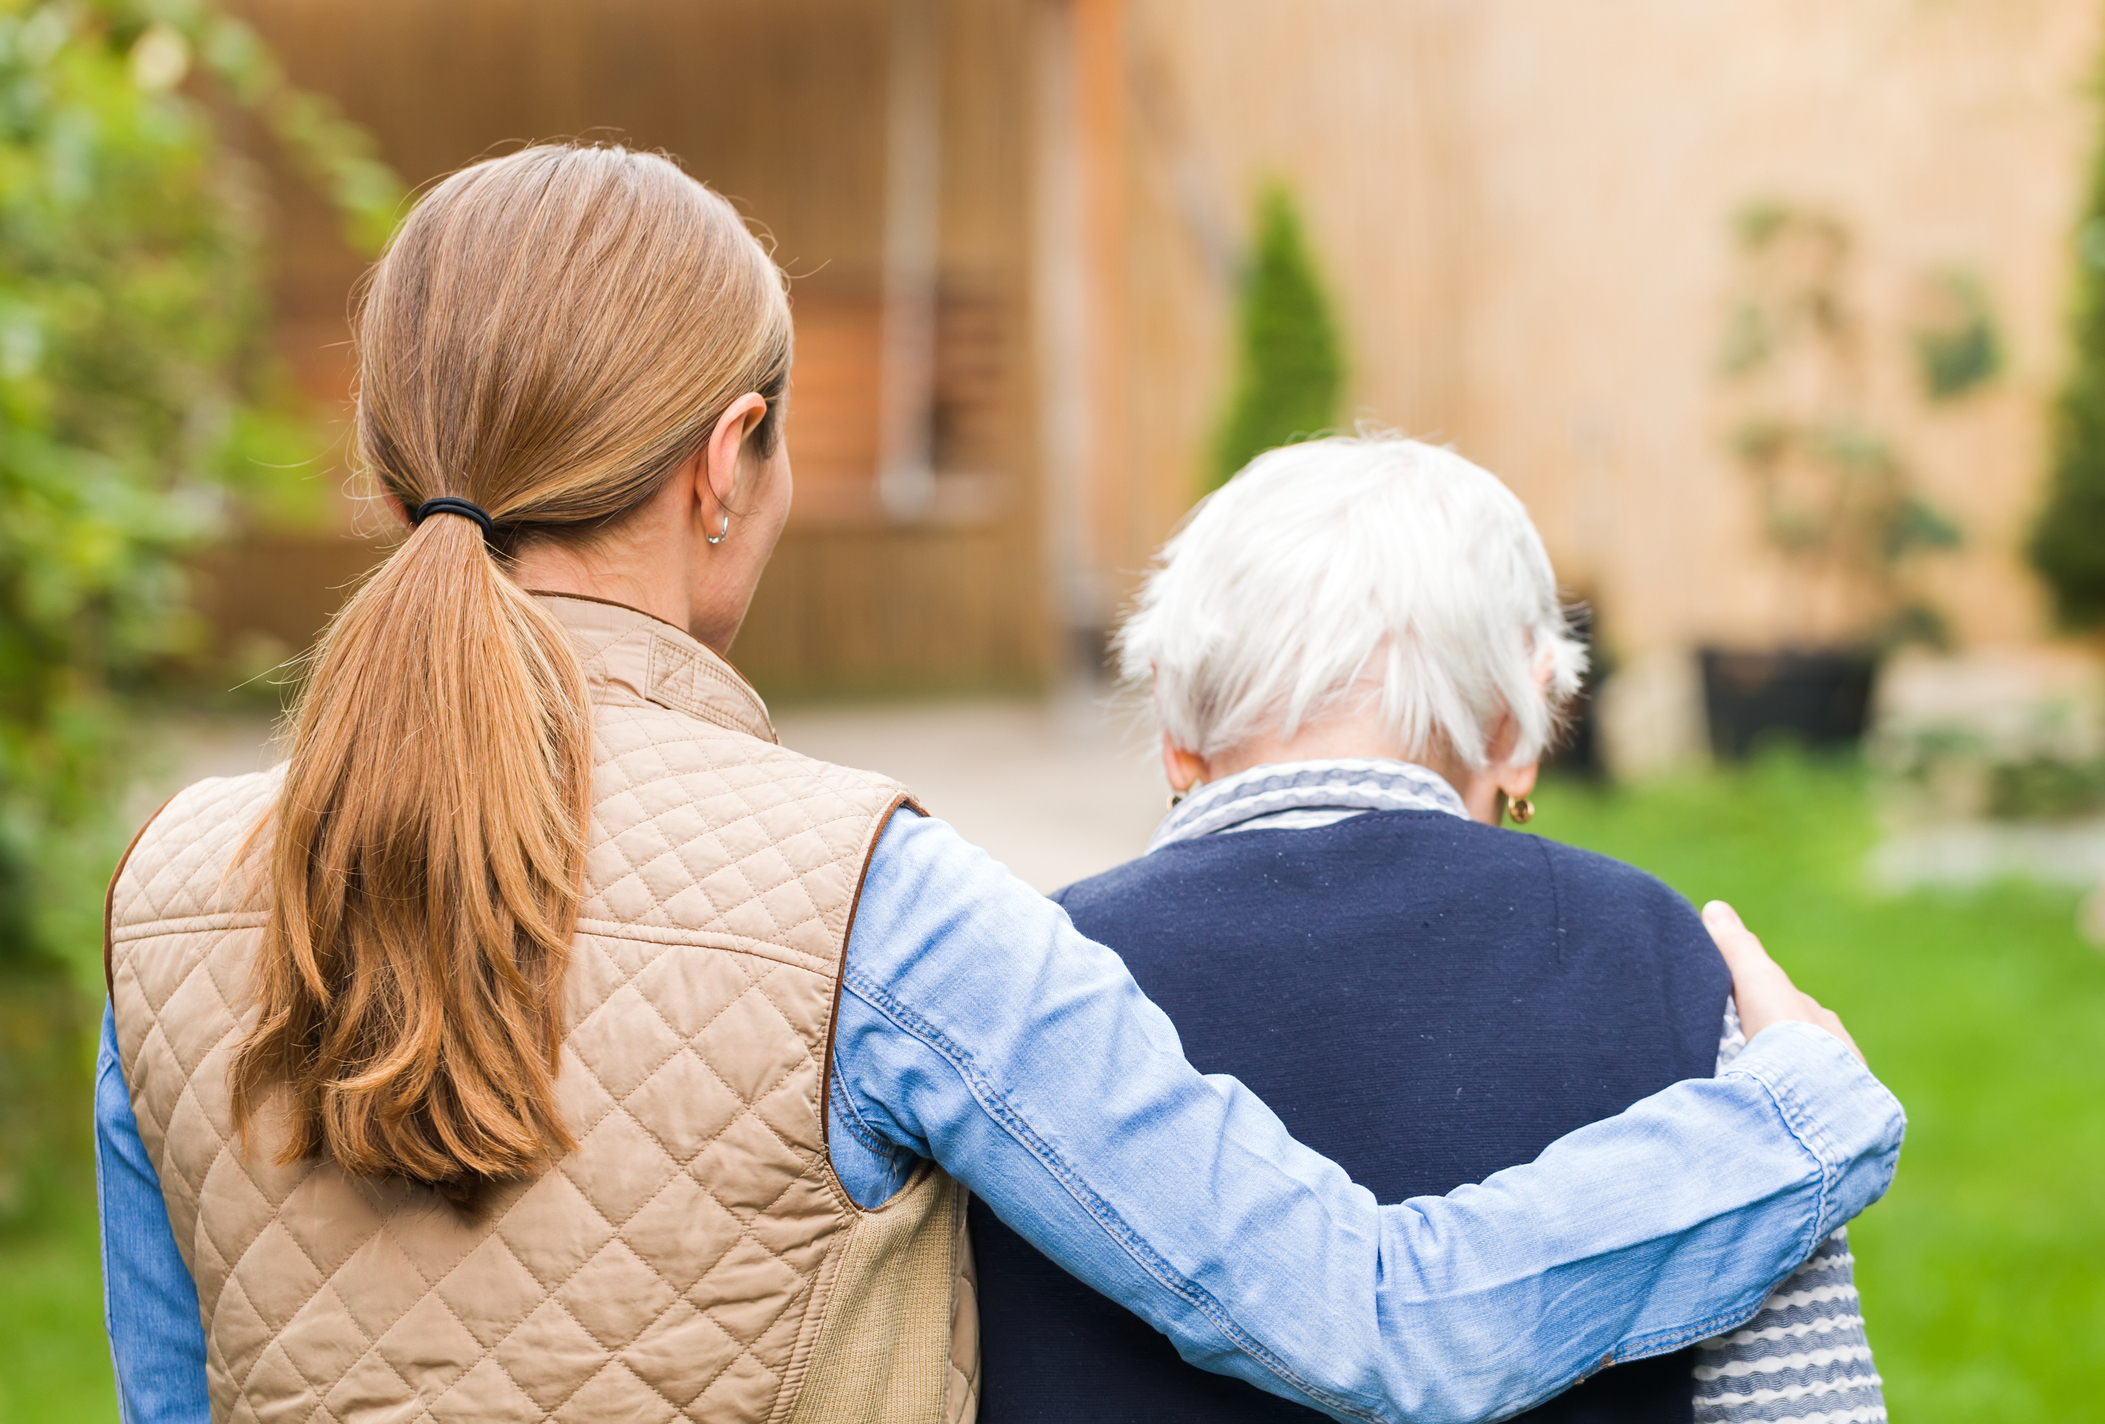 747,000 Canadians are living with Alzheimer's disease, - a number expected to increase to 1.4 million by 2030